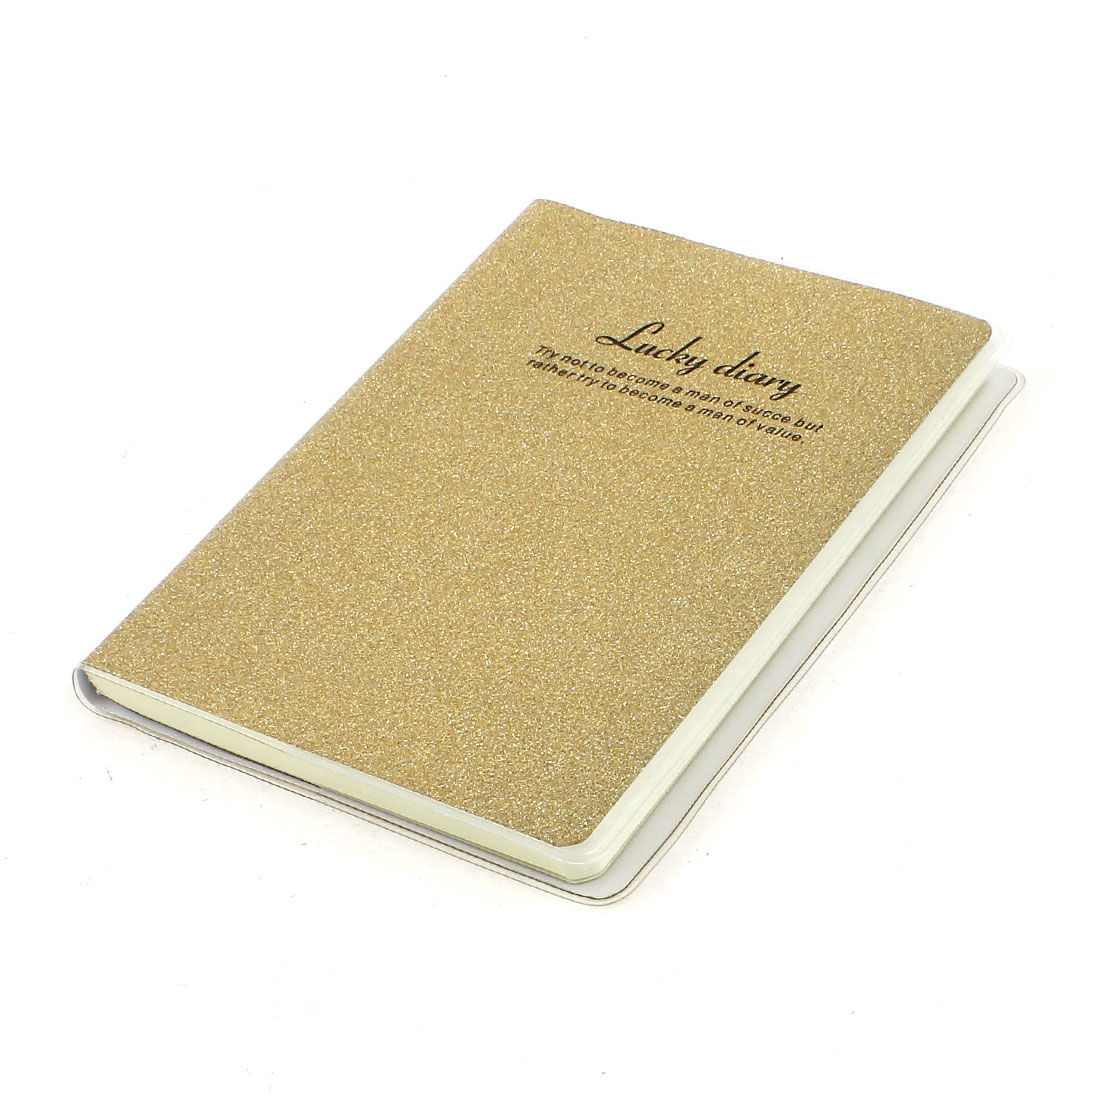 PVC Cover Gold Tone Glitter Powder Decor Diary Memo Book Notepad 80 Sheets